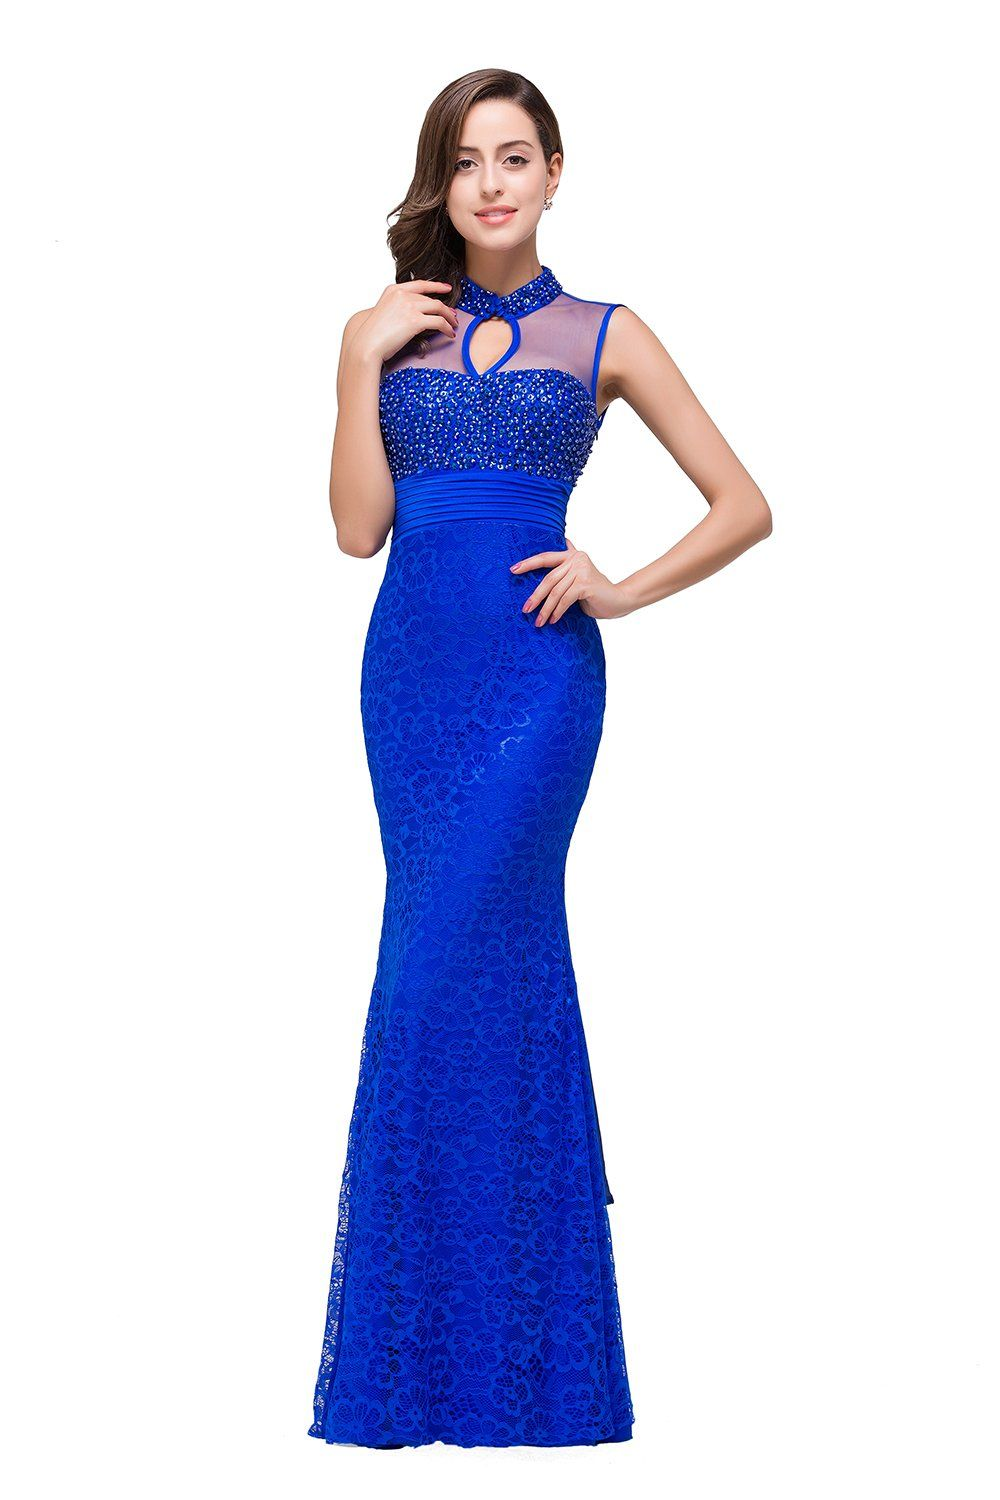 Sheath empire waist blue lace prom party dresses long for girls